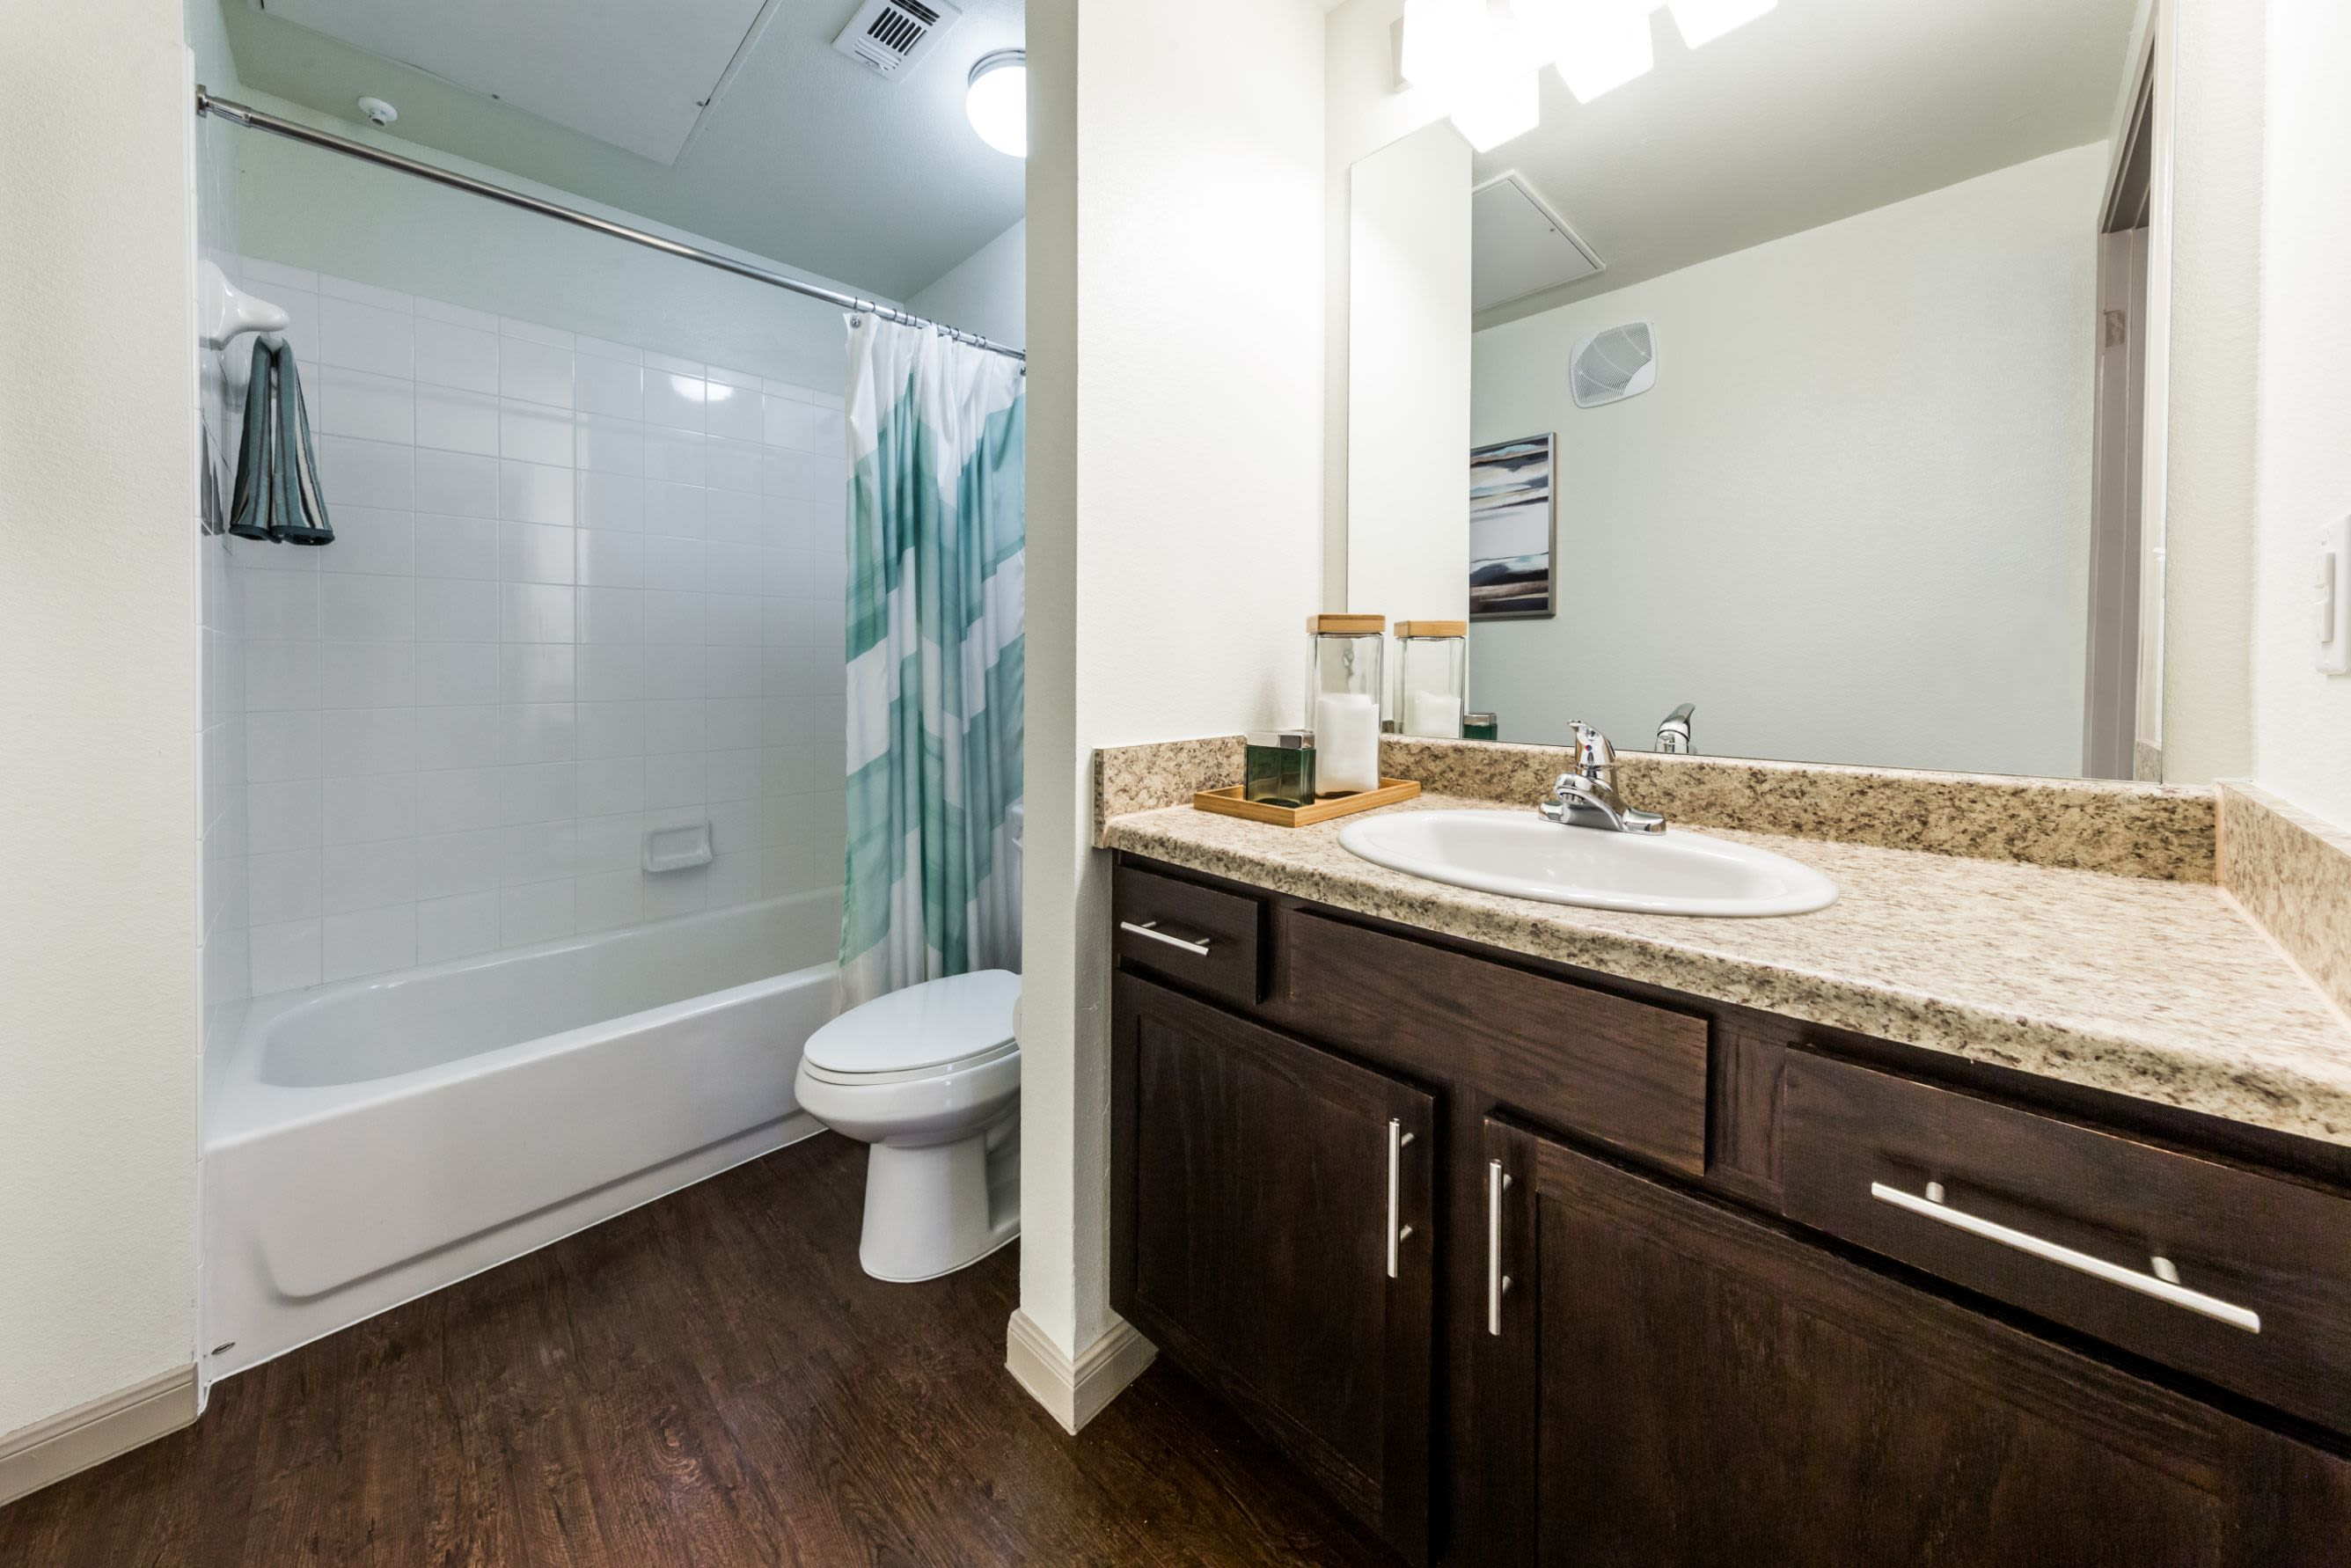 Bathroom with dark colored cabinets at Marquis on Lakeline in Cedar Park, Texas